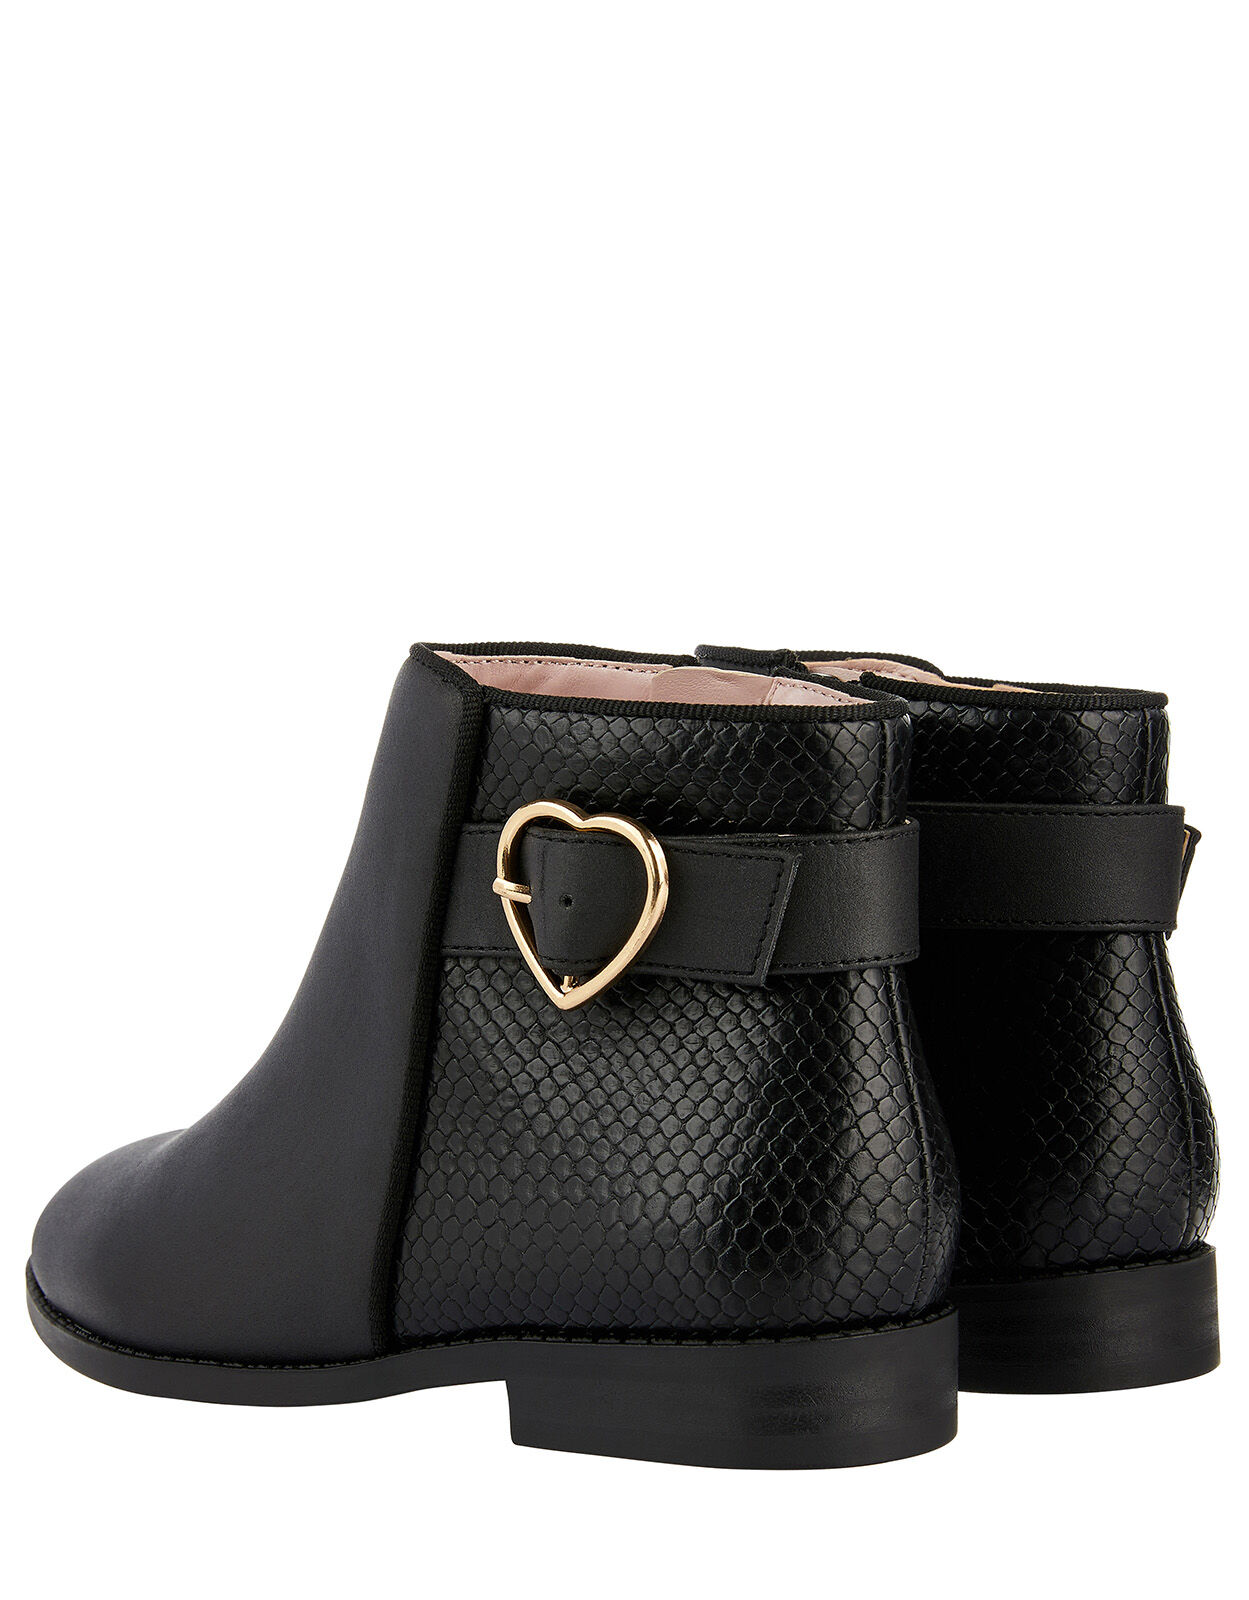 Mona Heart Buckle Ankle Boots Black